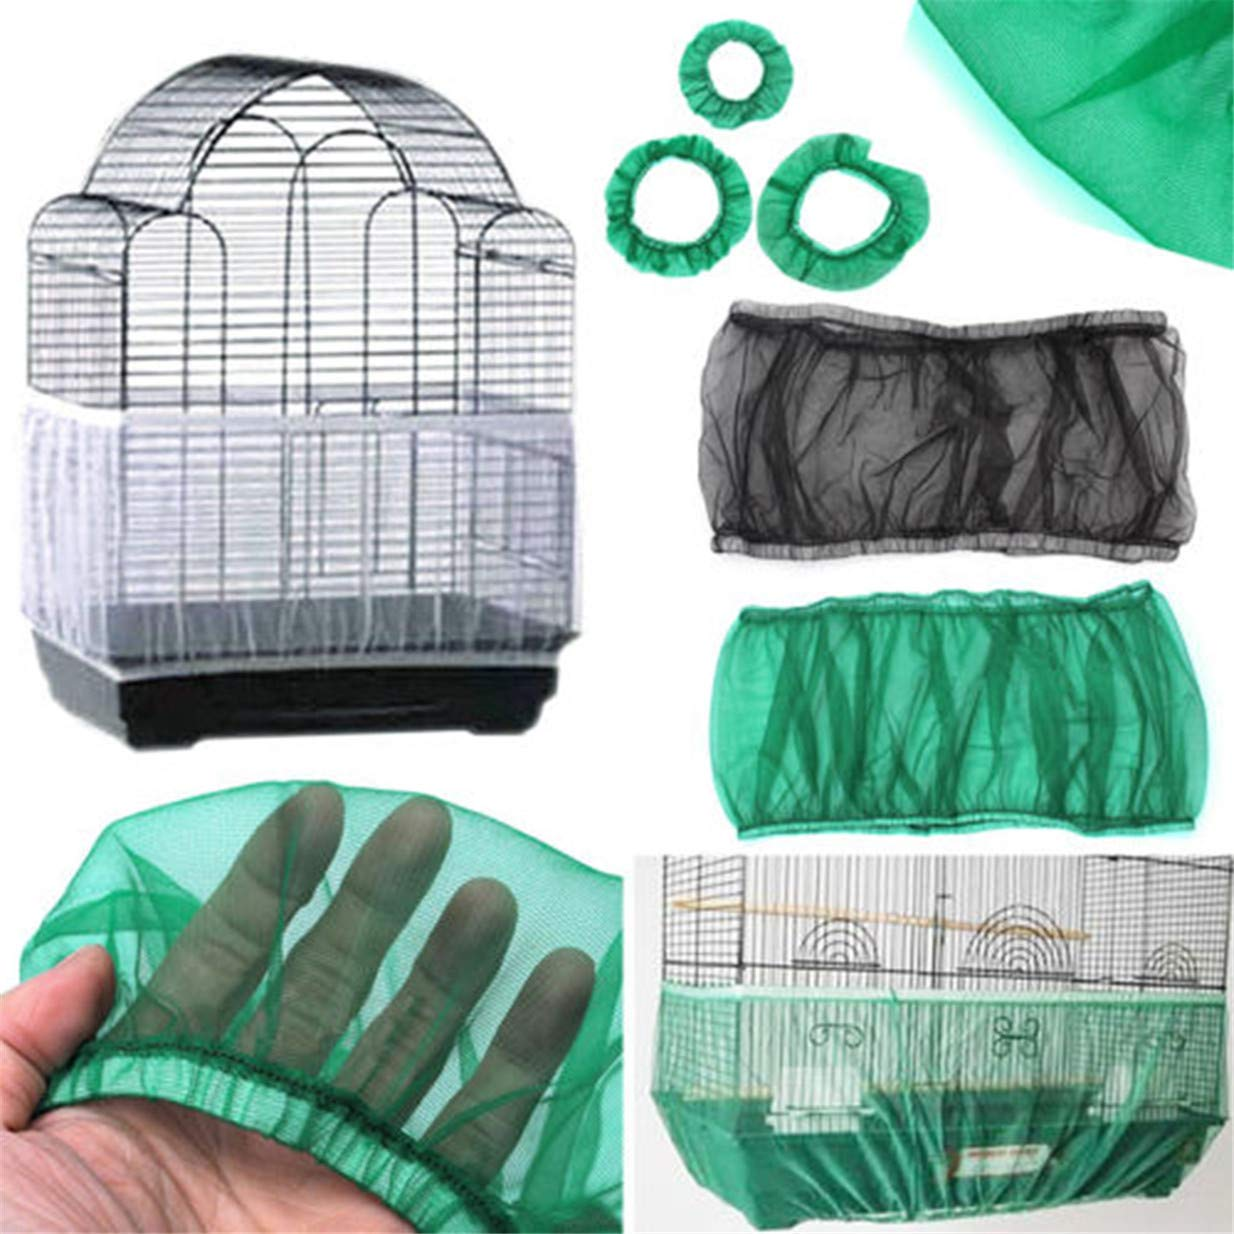 EJY Seed Catcher Bird Cage Tidy Bird Cage Mesh Net Cover Skirt Guard M, Black